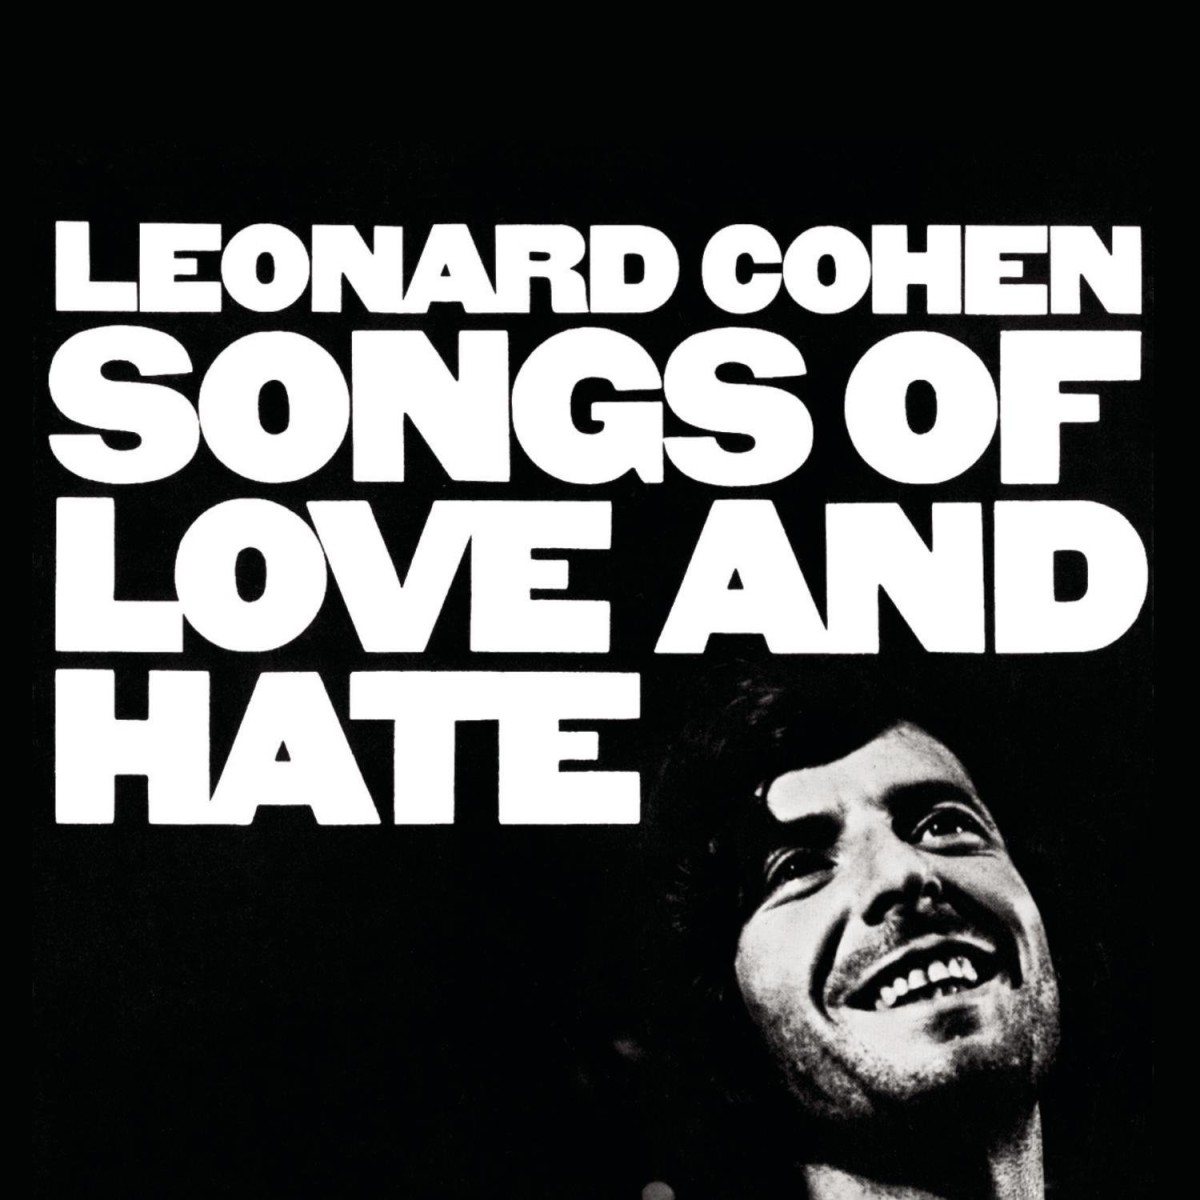 best Leonard Cohen songs love and hate